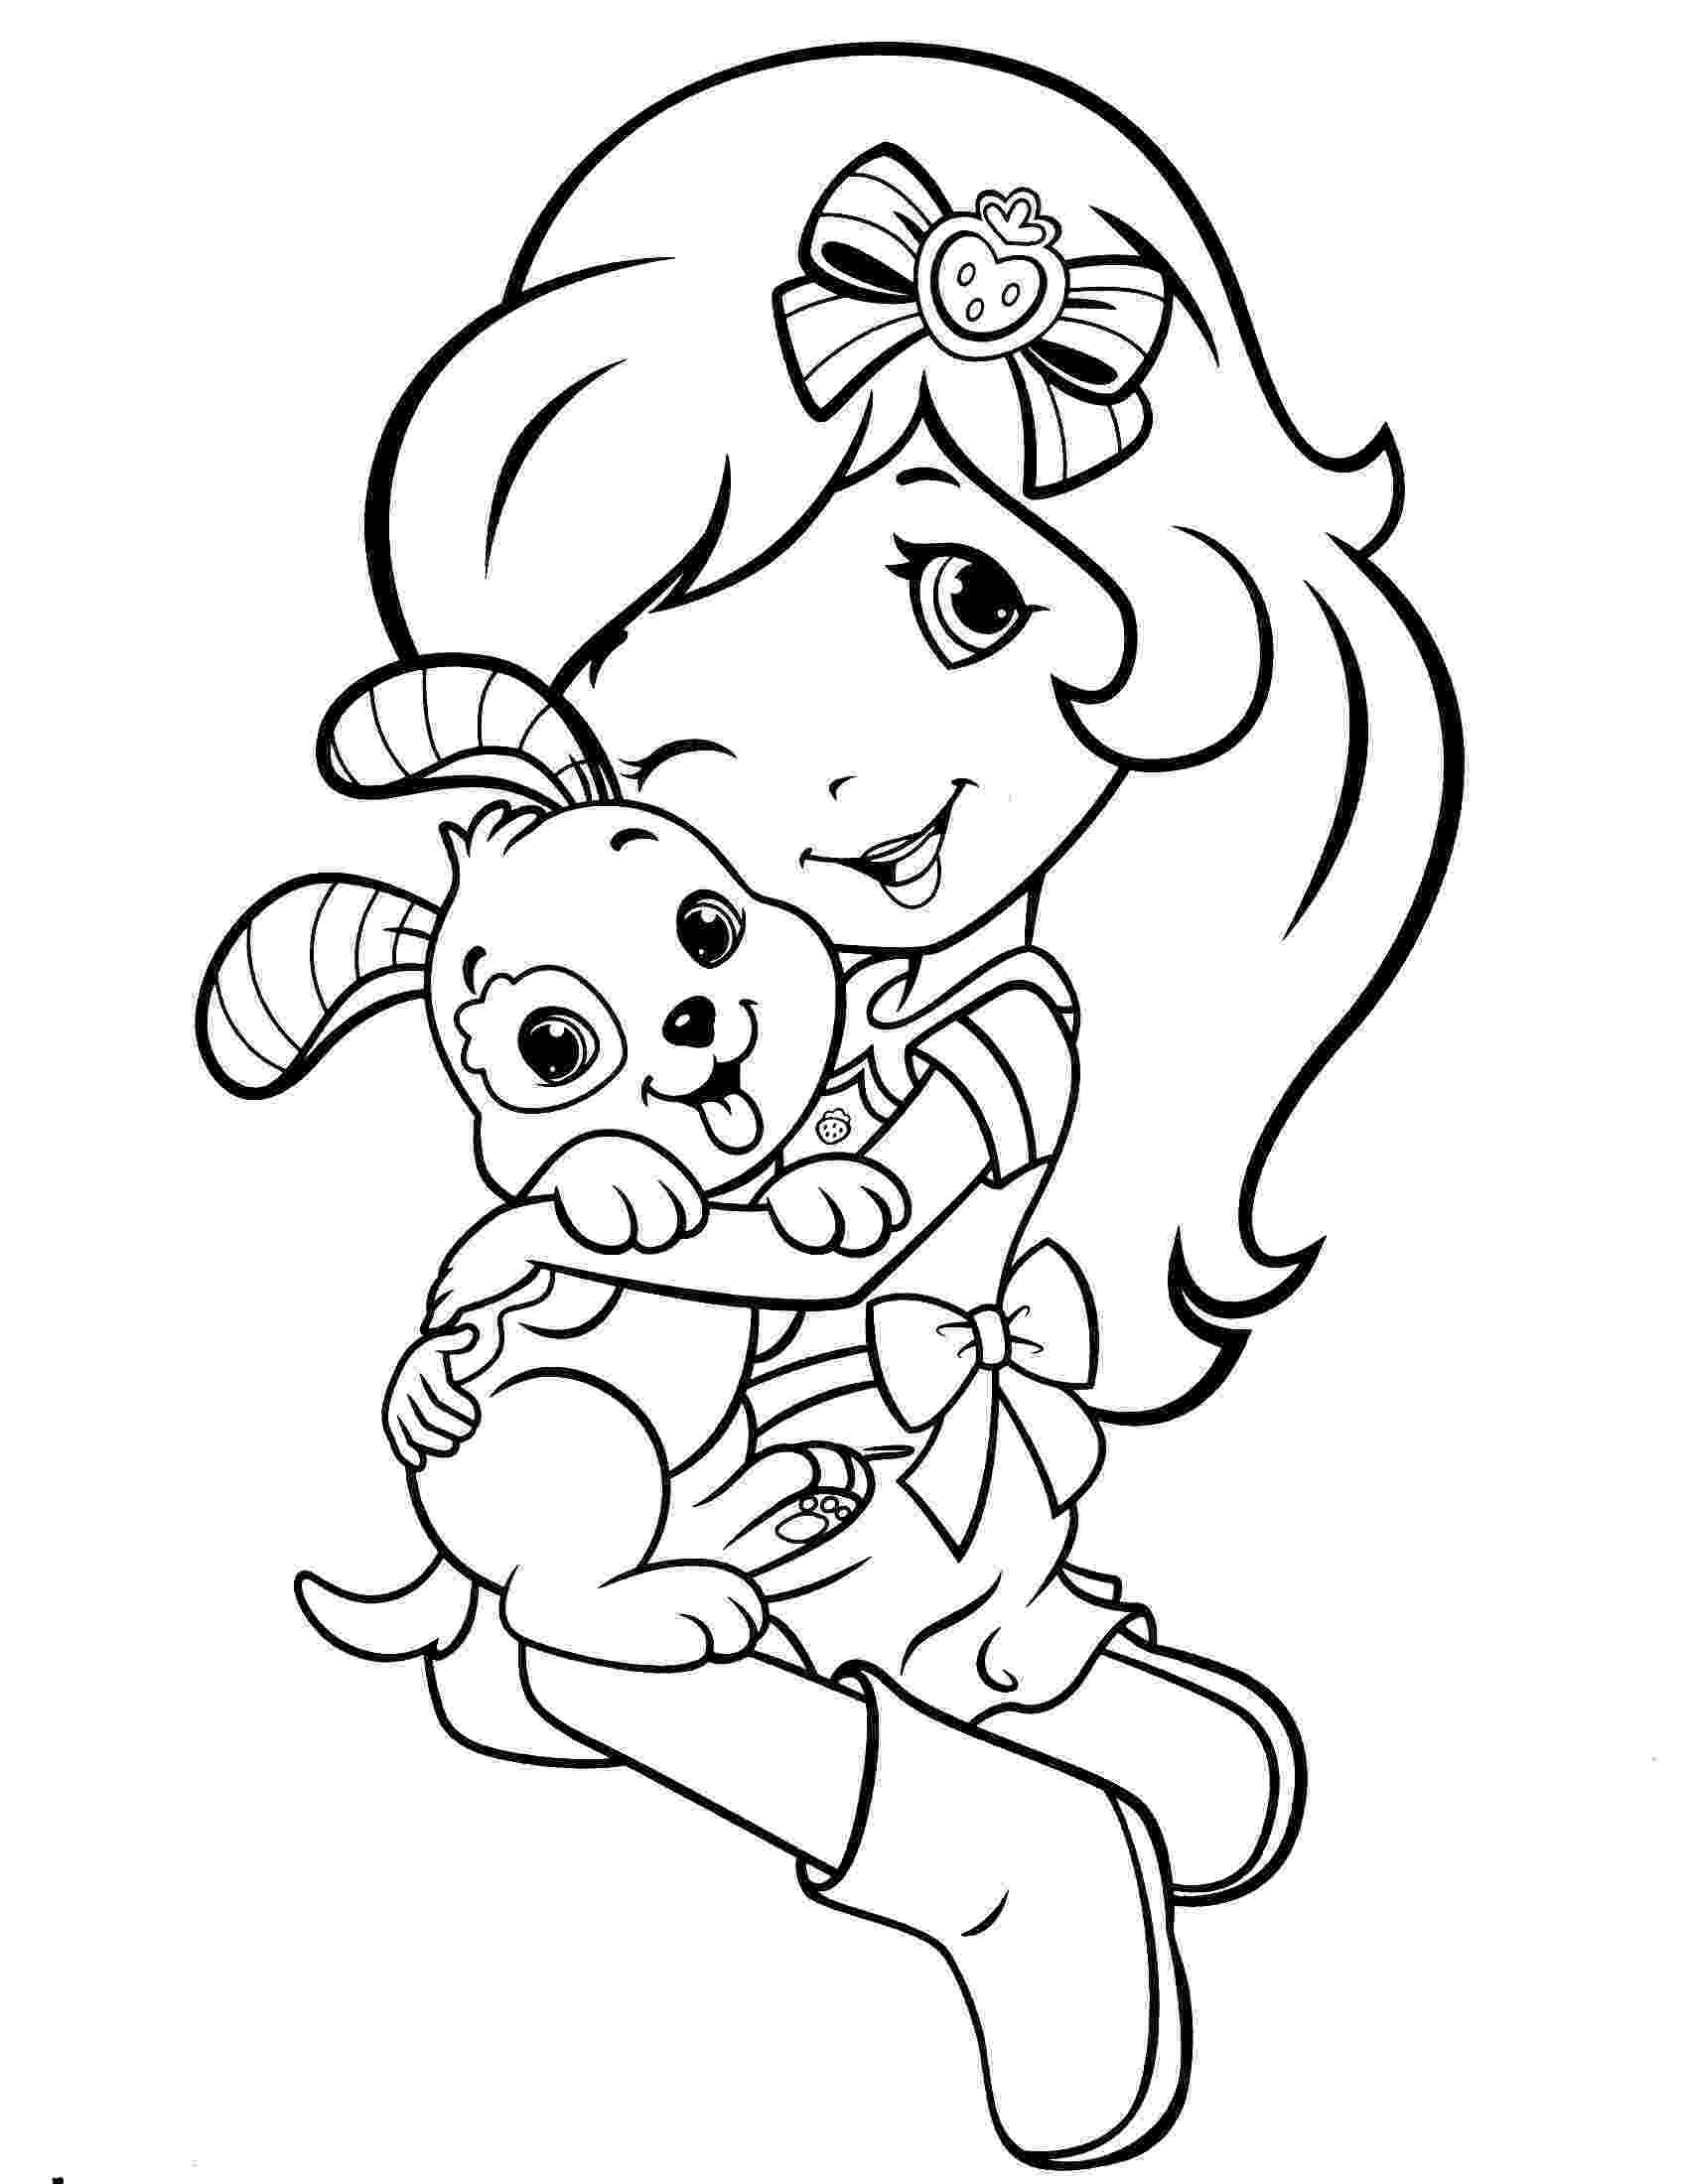 strawberry shortcake colouring pictures strawberry shortcake coloring pages getcoloringpagescom pictures shortcake strawberry colouring